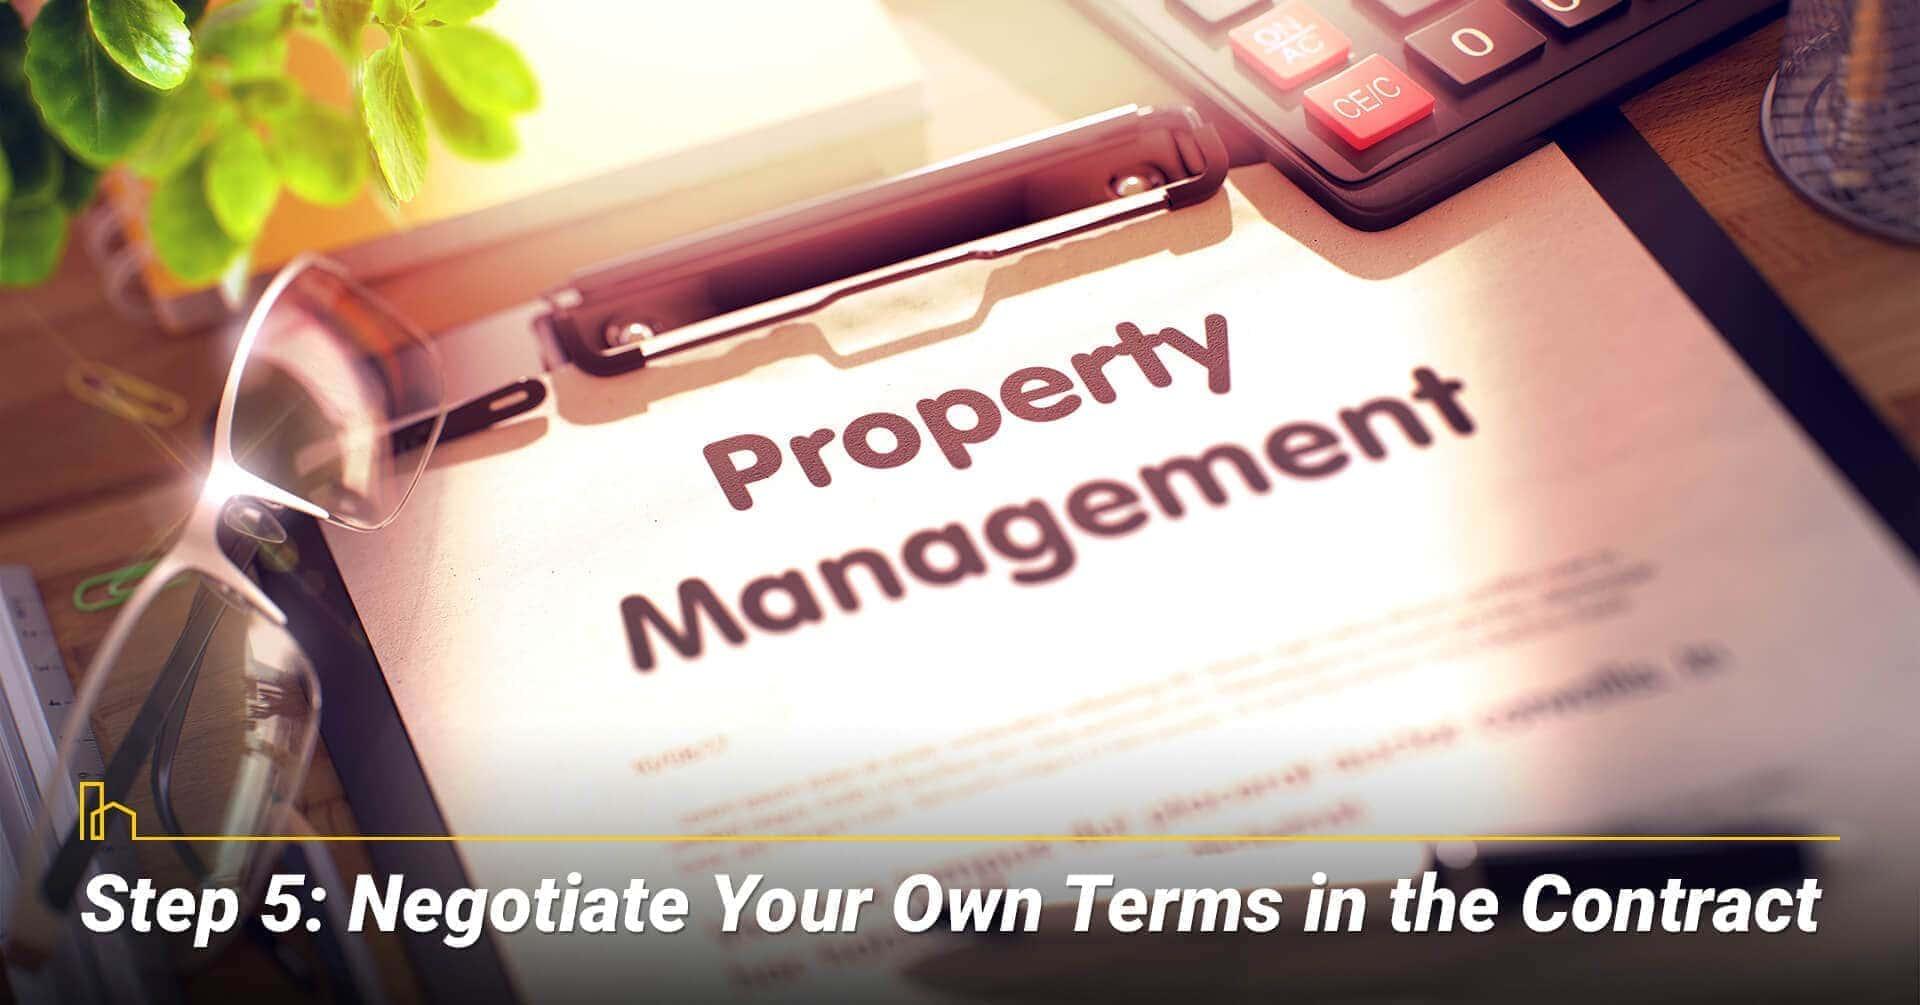 Step 5: Negotiate Your Own Terms in the Contract